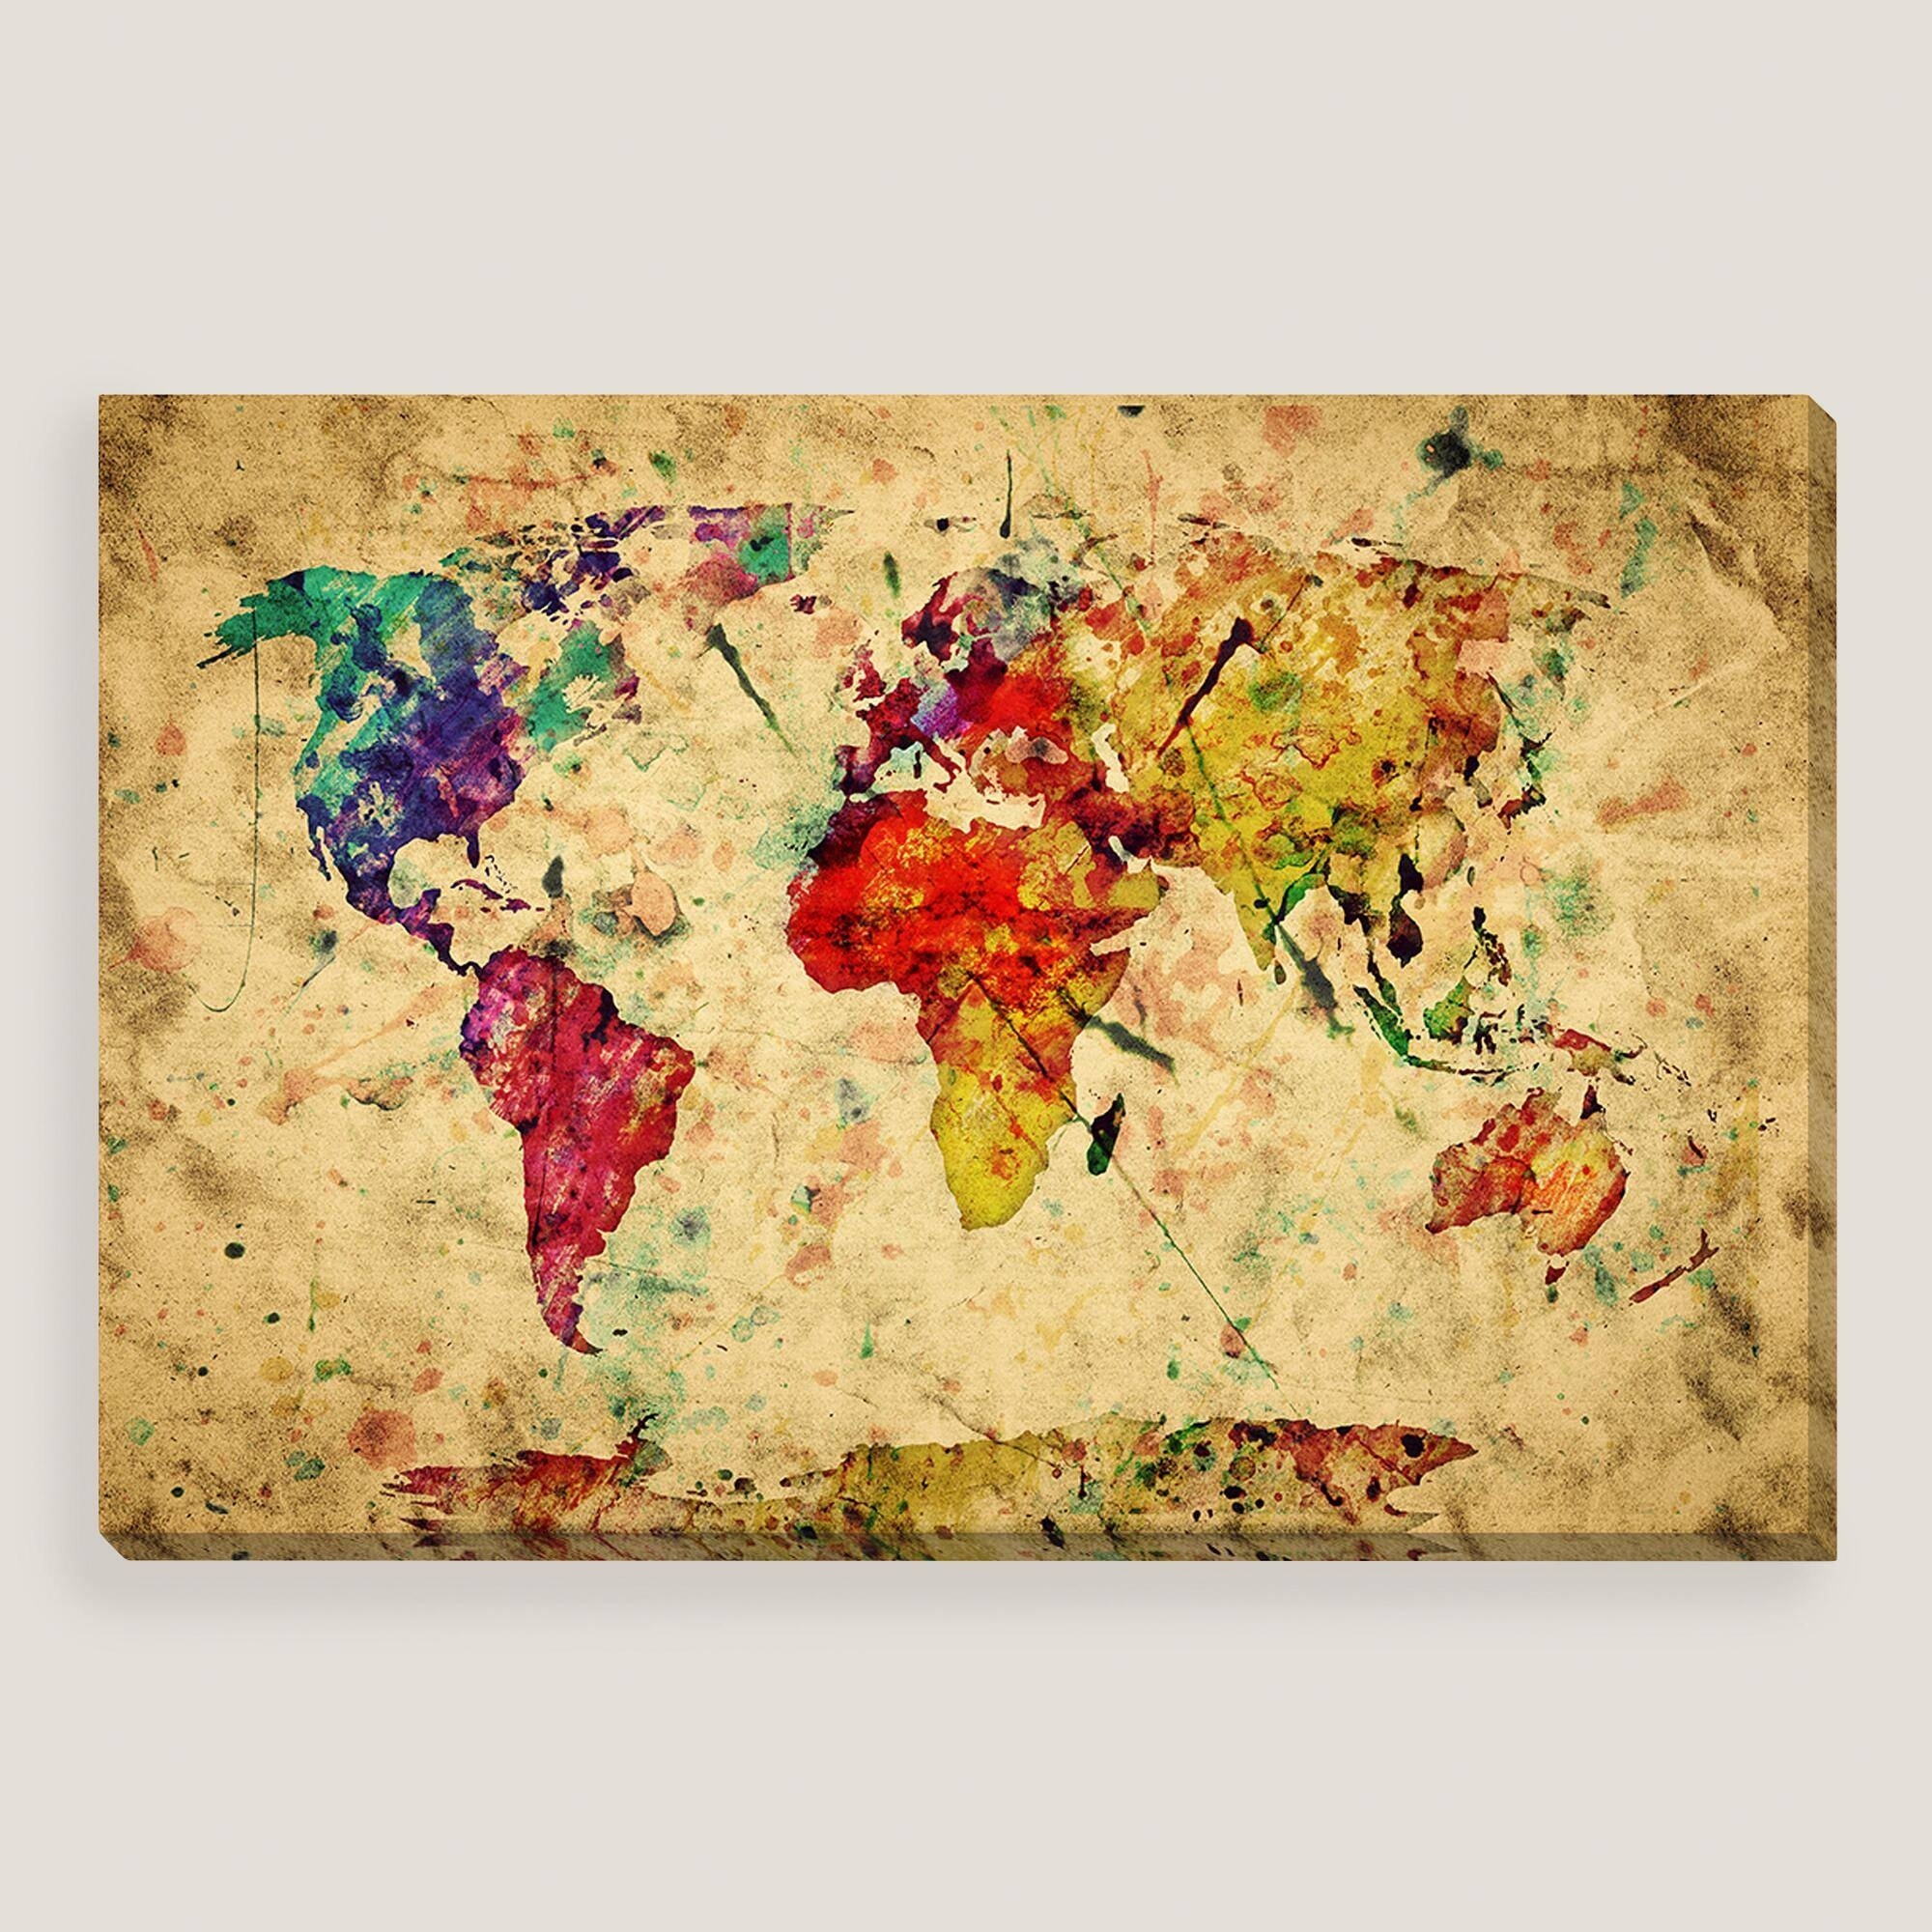 Wall Art Design: Vintage Map Wall Art Amazing Design Collection Pertaining To Best And Newest Vintage Style Wall Art (View 16 of 20)